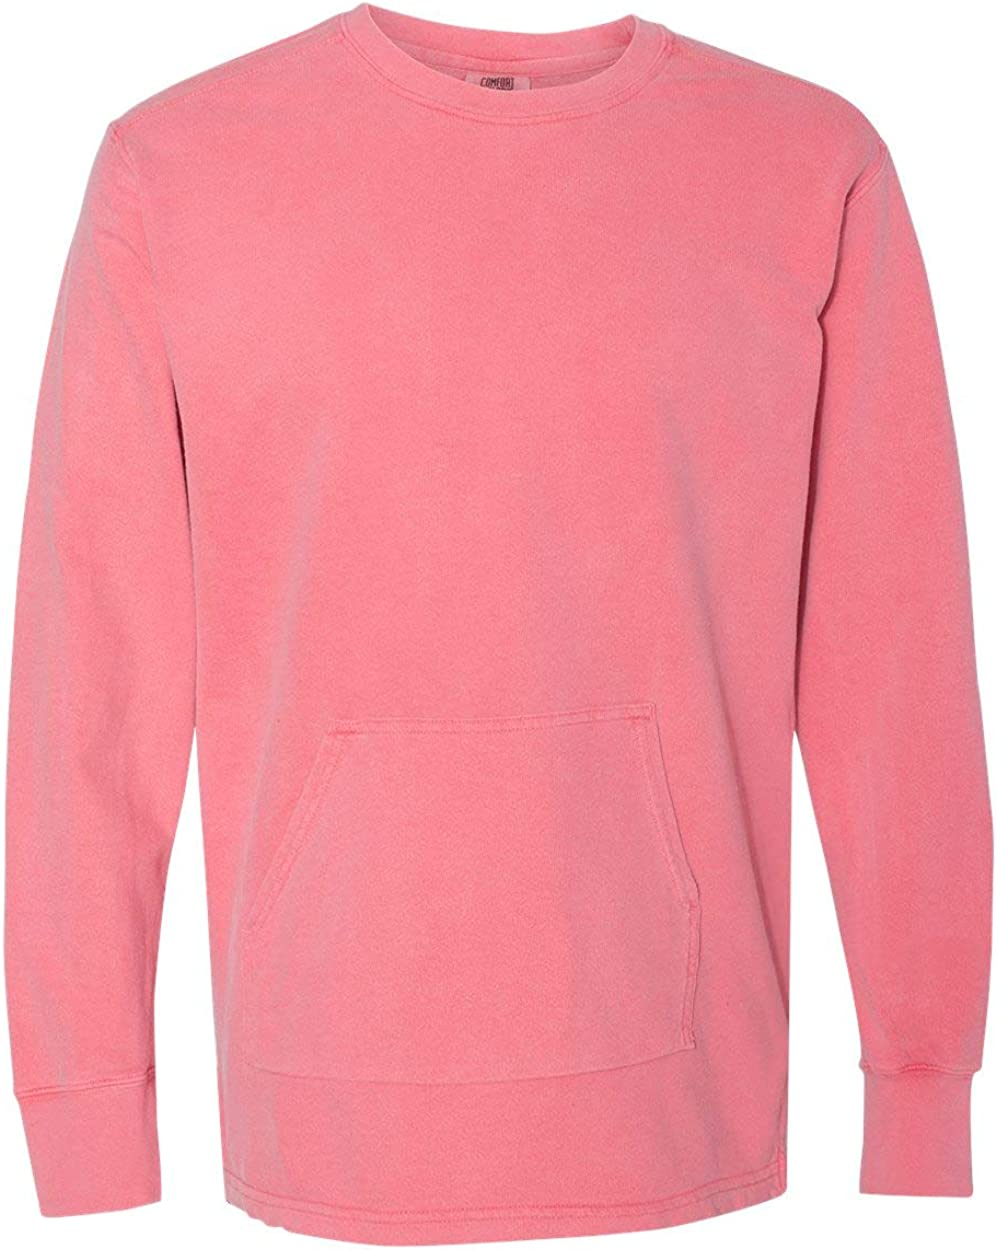 Comfort Colors French Terry Crewneck 1536